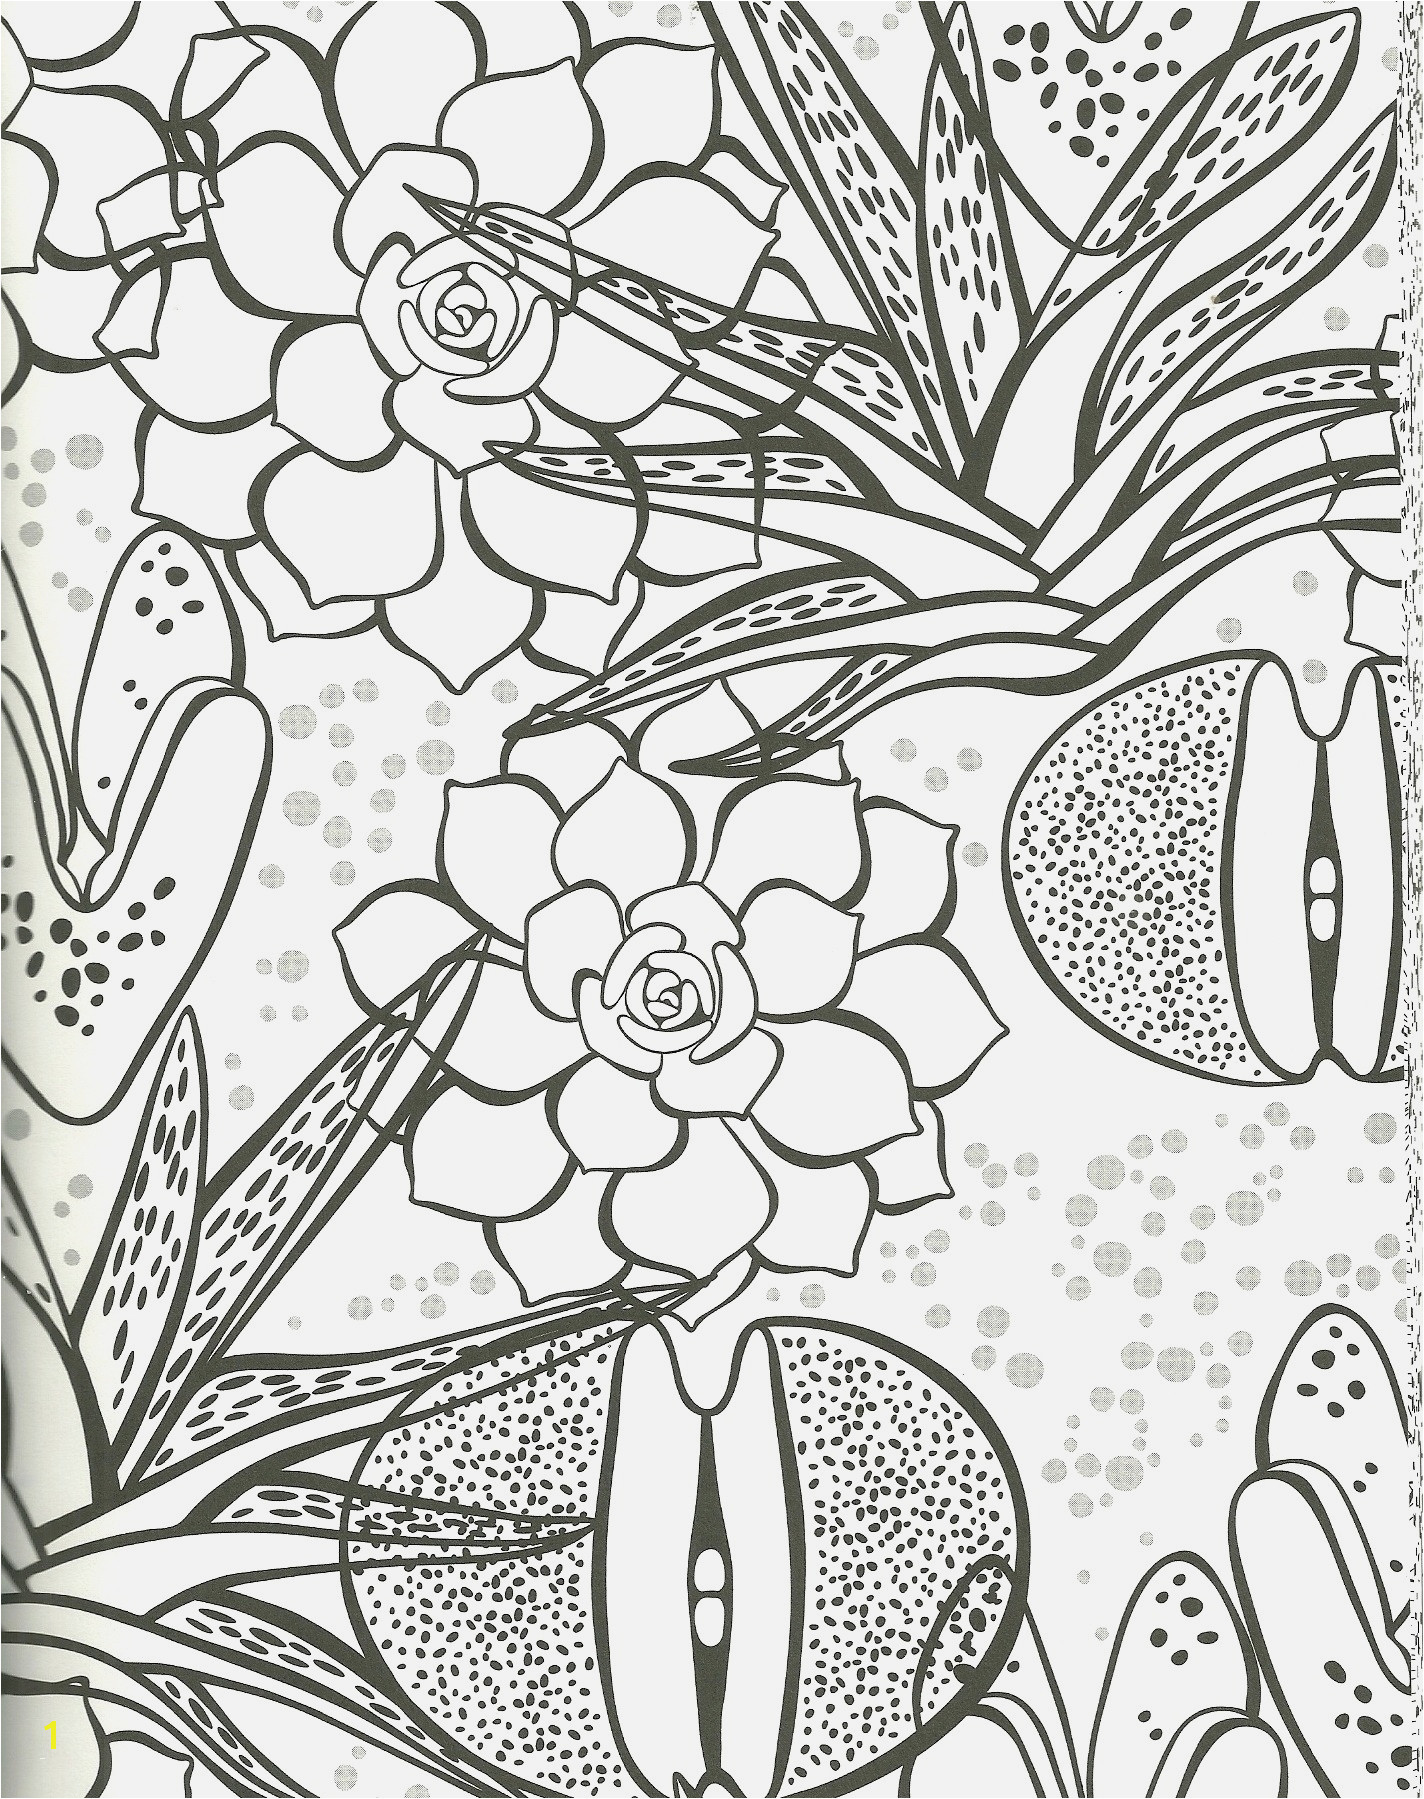 Difficult Coloring Pages Easy and Fun Stress Relief Coloring Pages Free Play & Learn Difficult